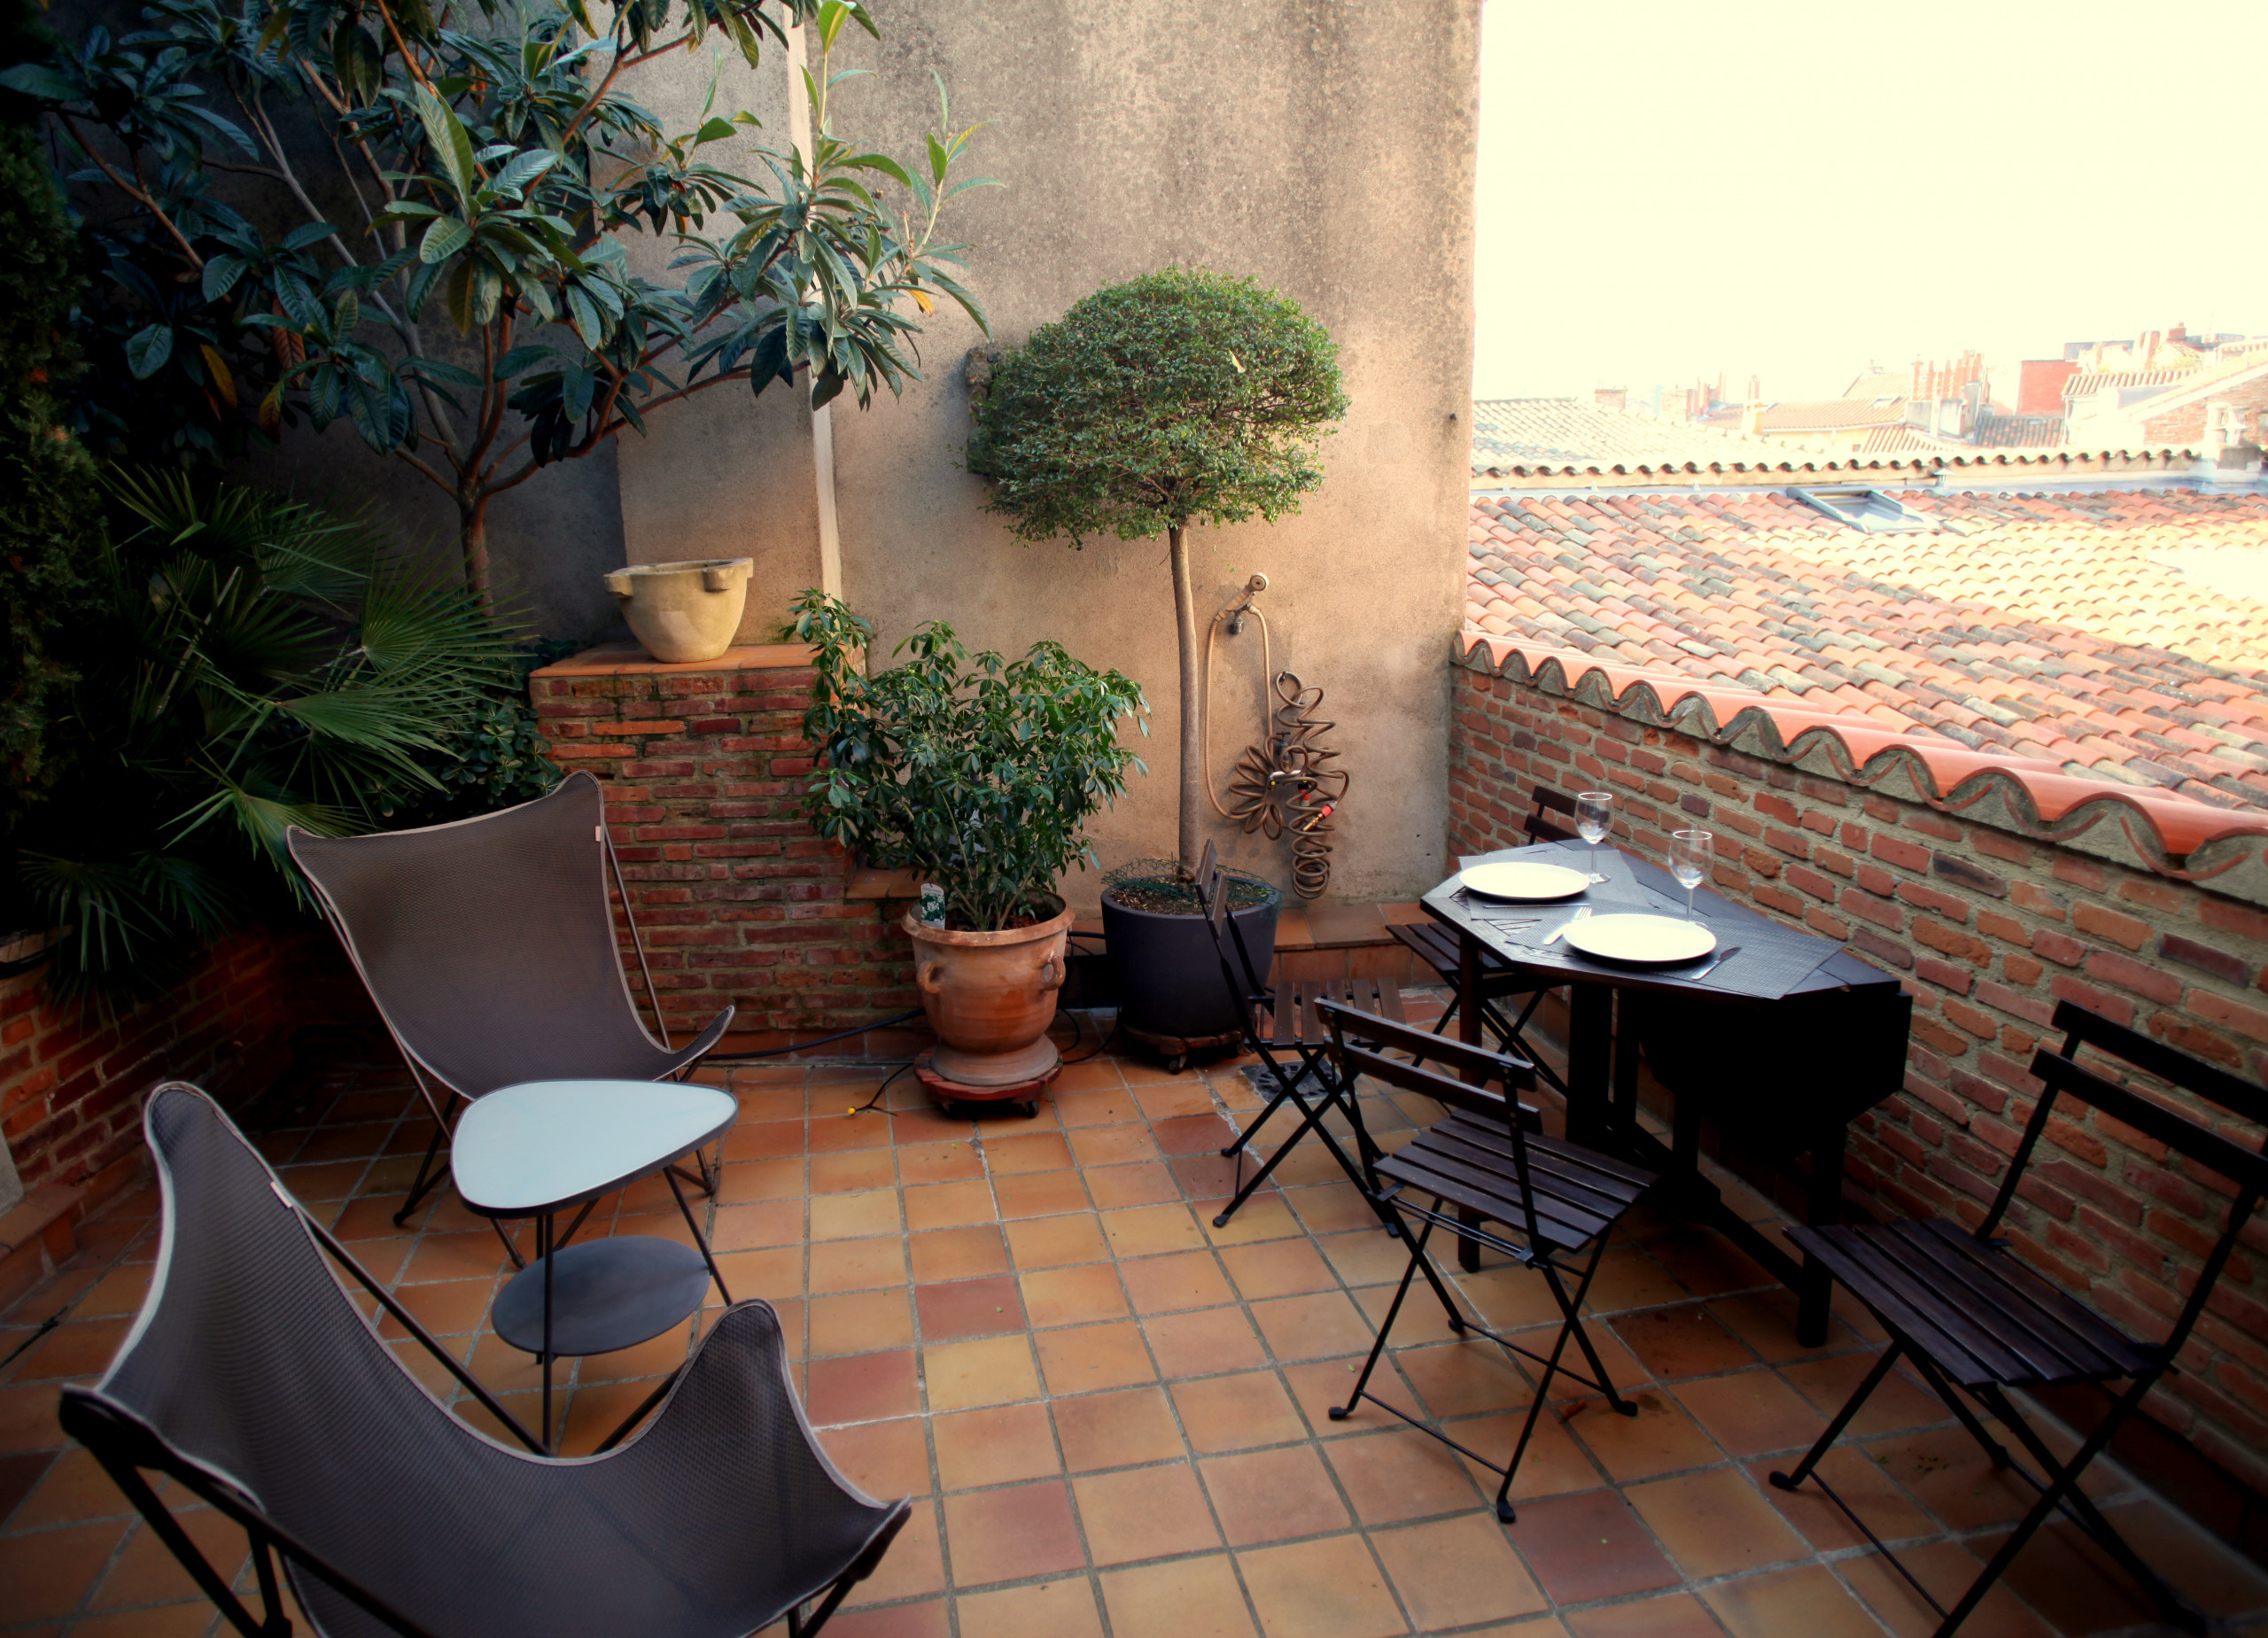 Terrasse Toulouse Studios In Toulouse With Air Conditioned Croix Baragnon Terrasse